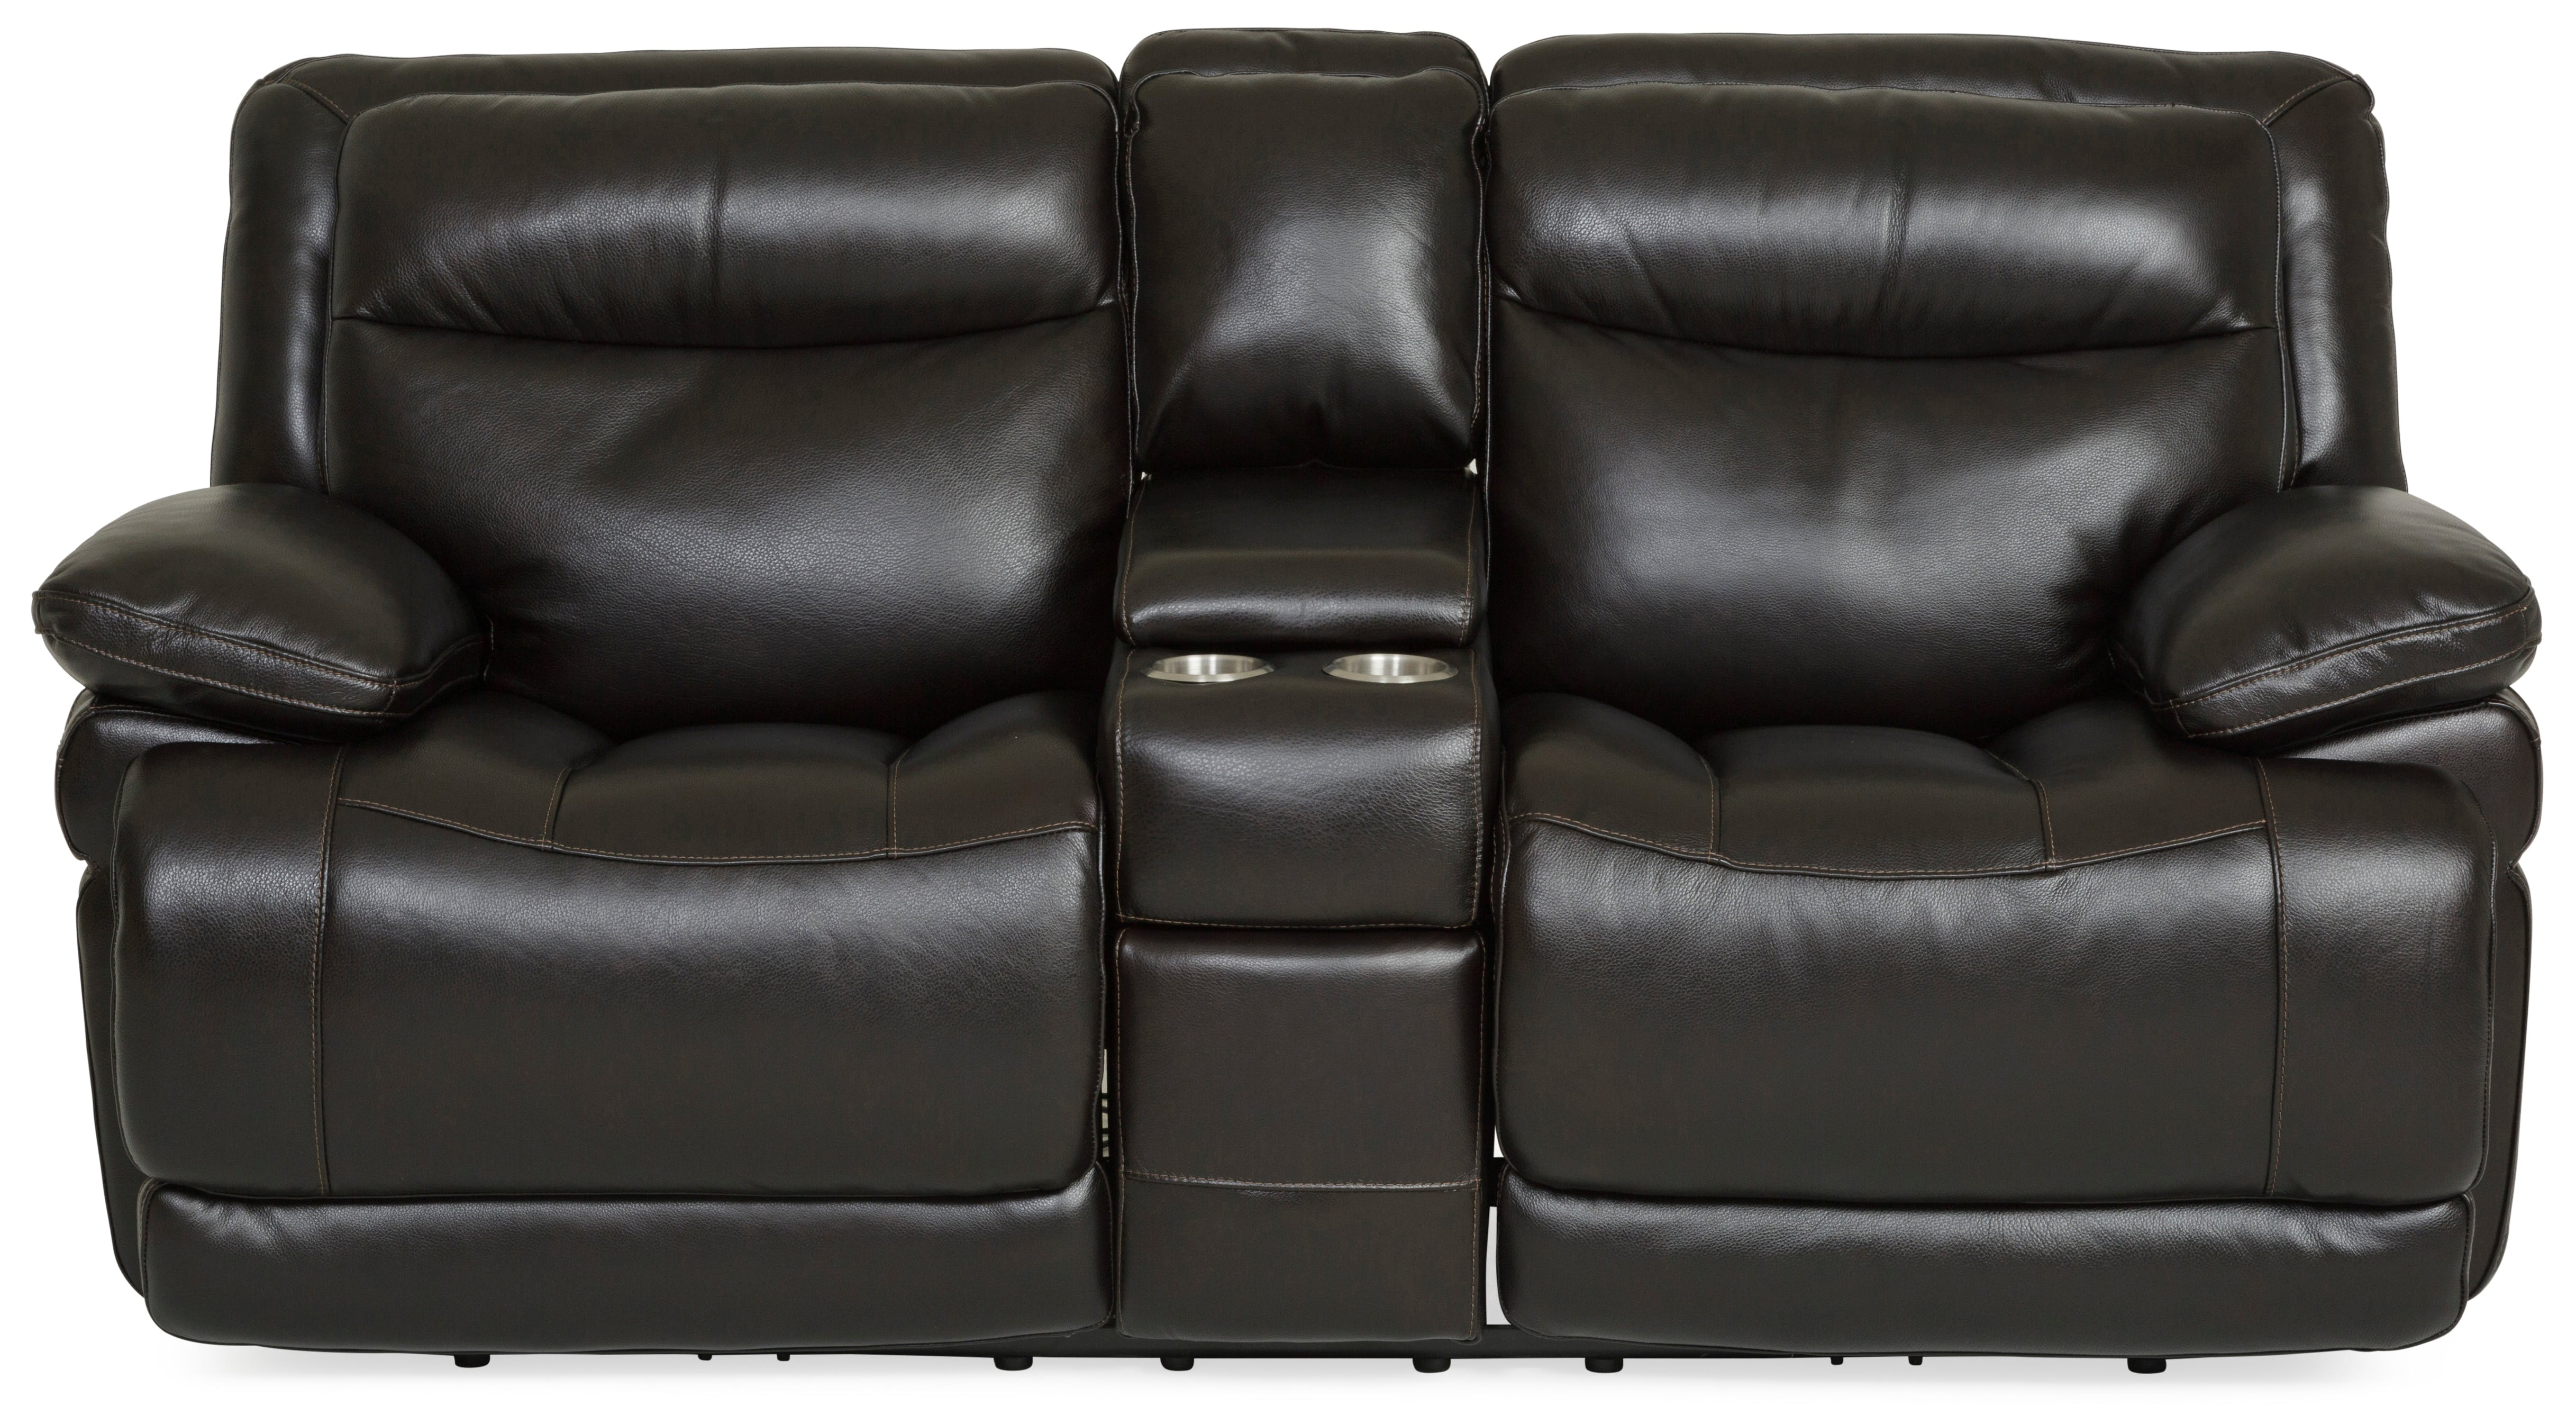 Longhorn Leather Power Reclining Loveseat - BLACKBERRY ST:422716